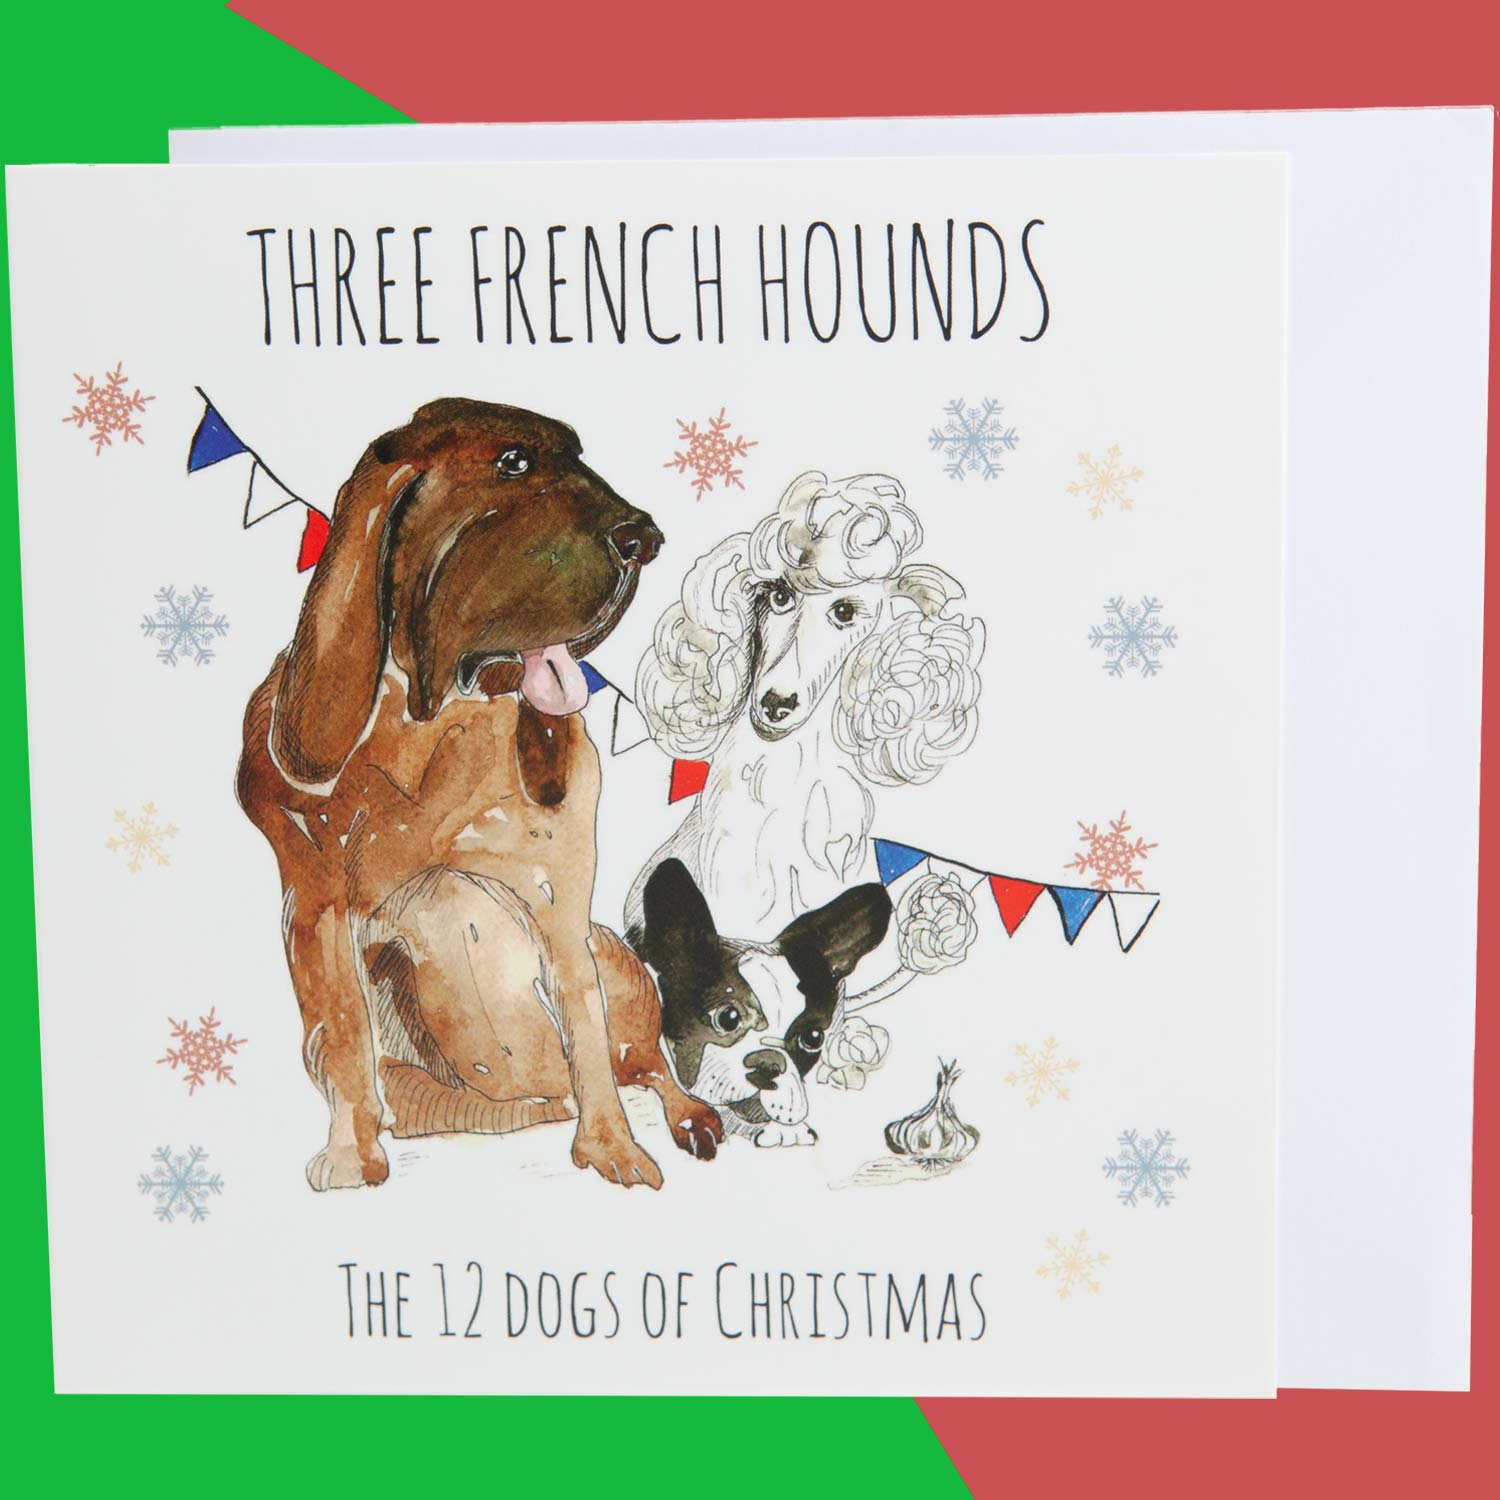 Dog Krazy Gifts - Three French Hounds - Part of the 12 Dogs of Christmas card collection available from DogKrazyGifts.co.uk